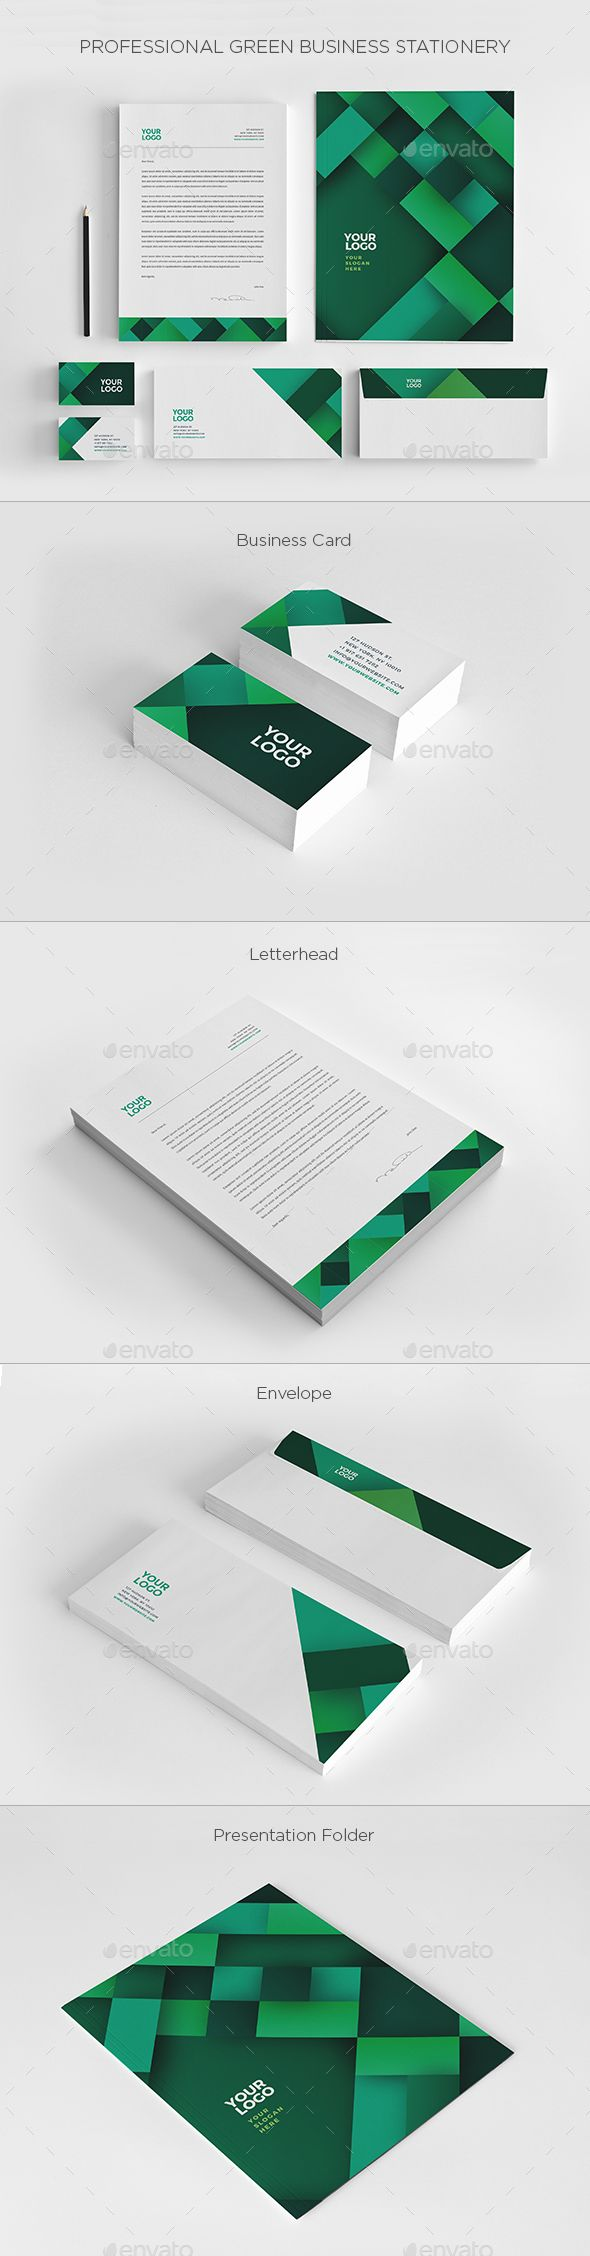 12 best stationery images on pinterest ai illustrator black and professional green business stationery stationery print templates download here https accmission Images